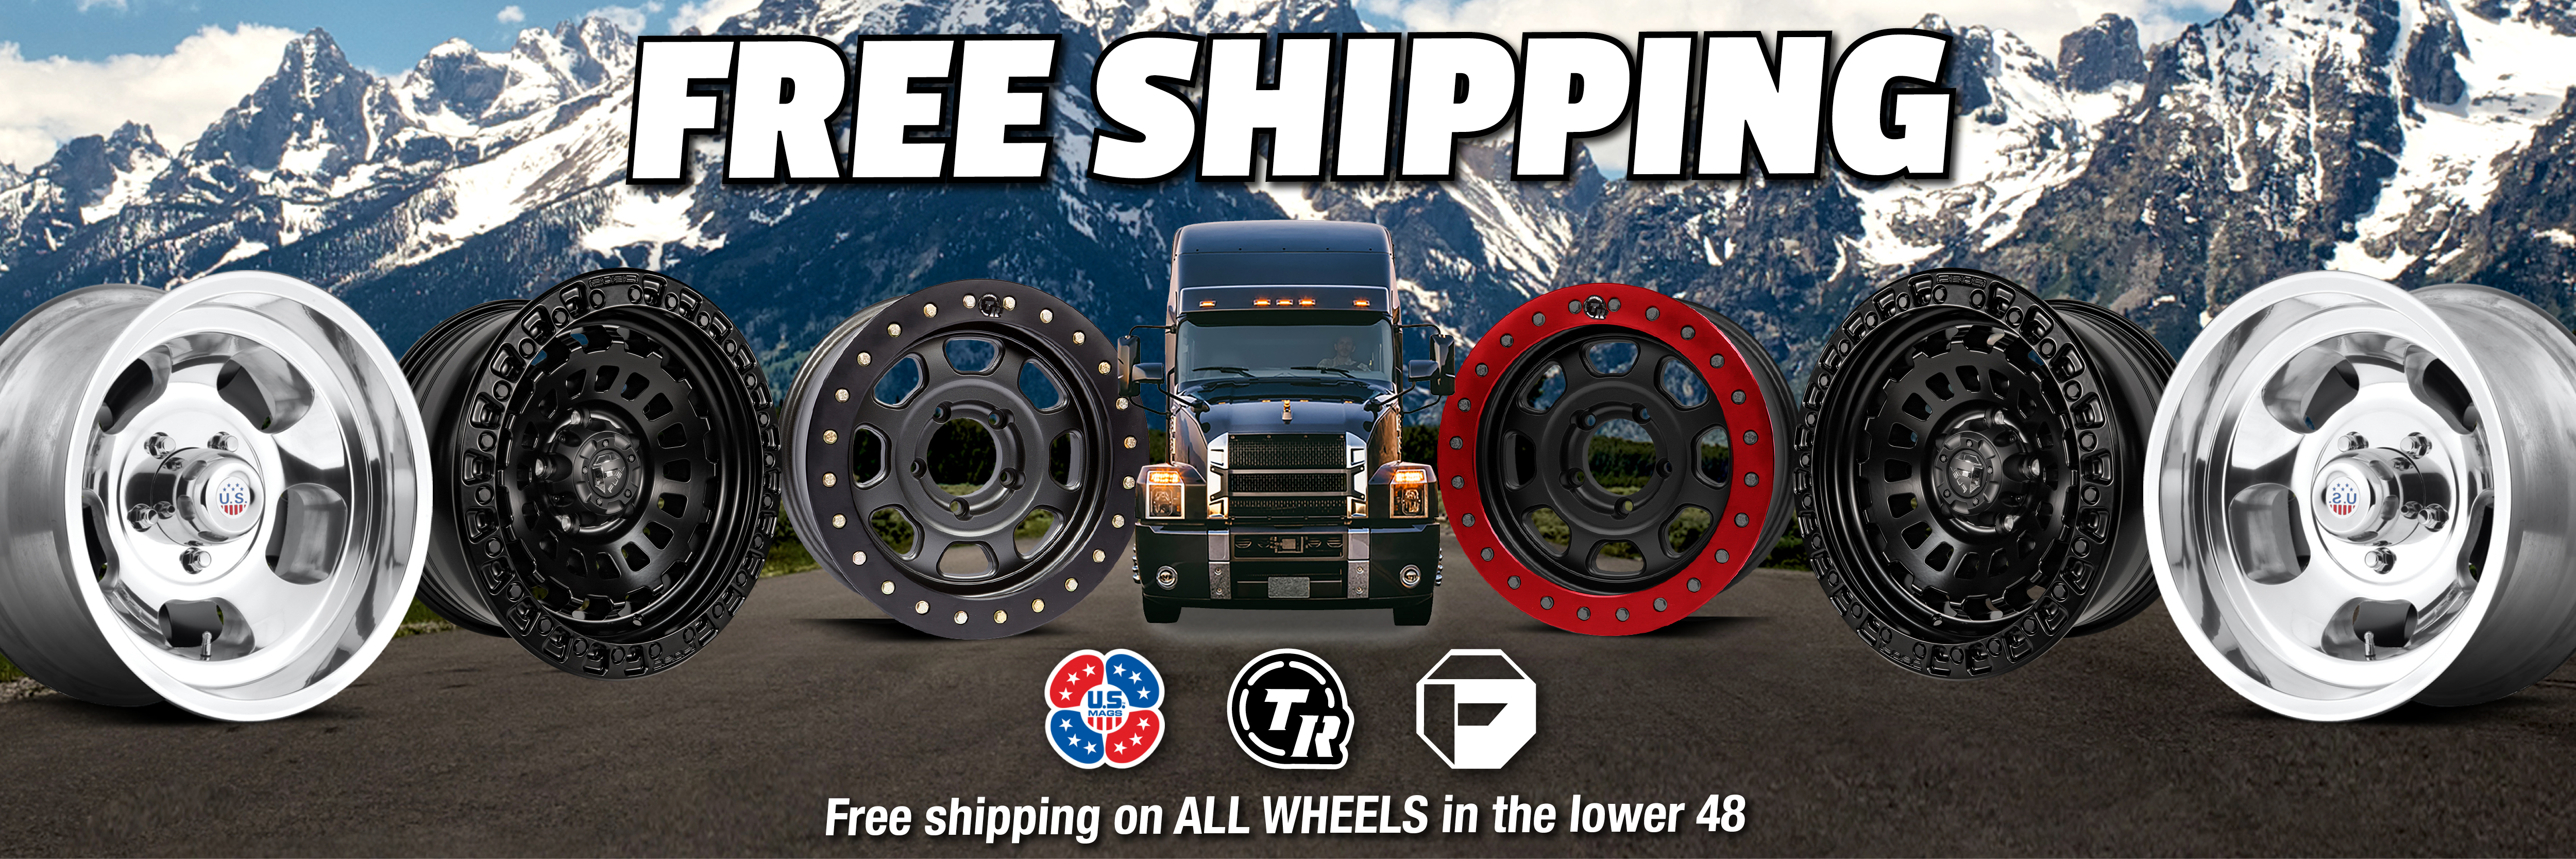 FREE Shipping on ALL Wheels